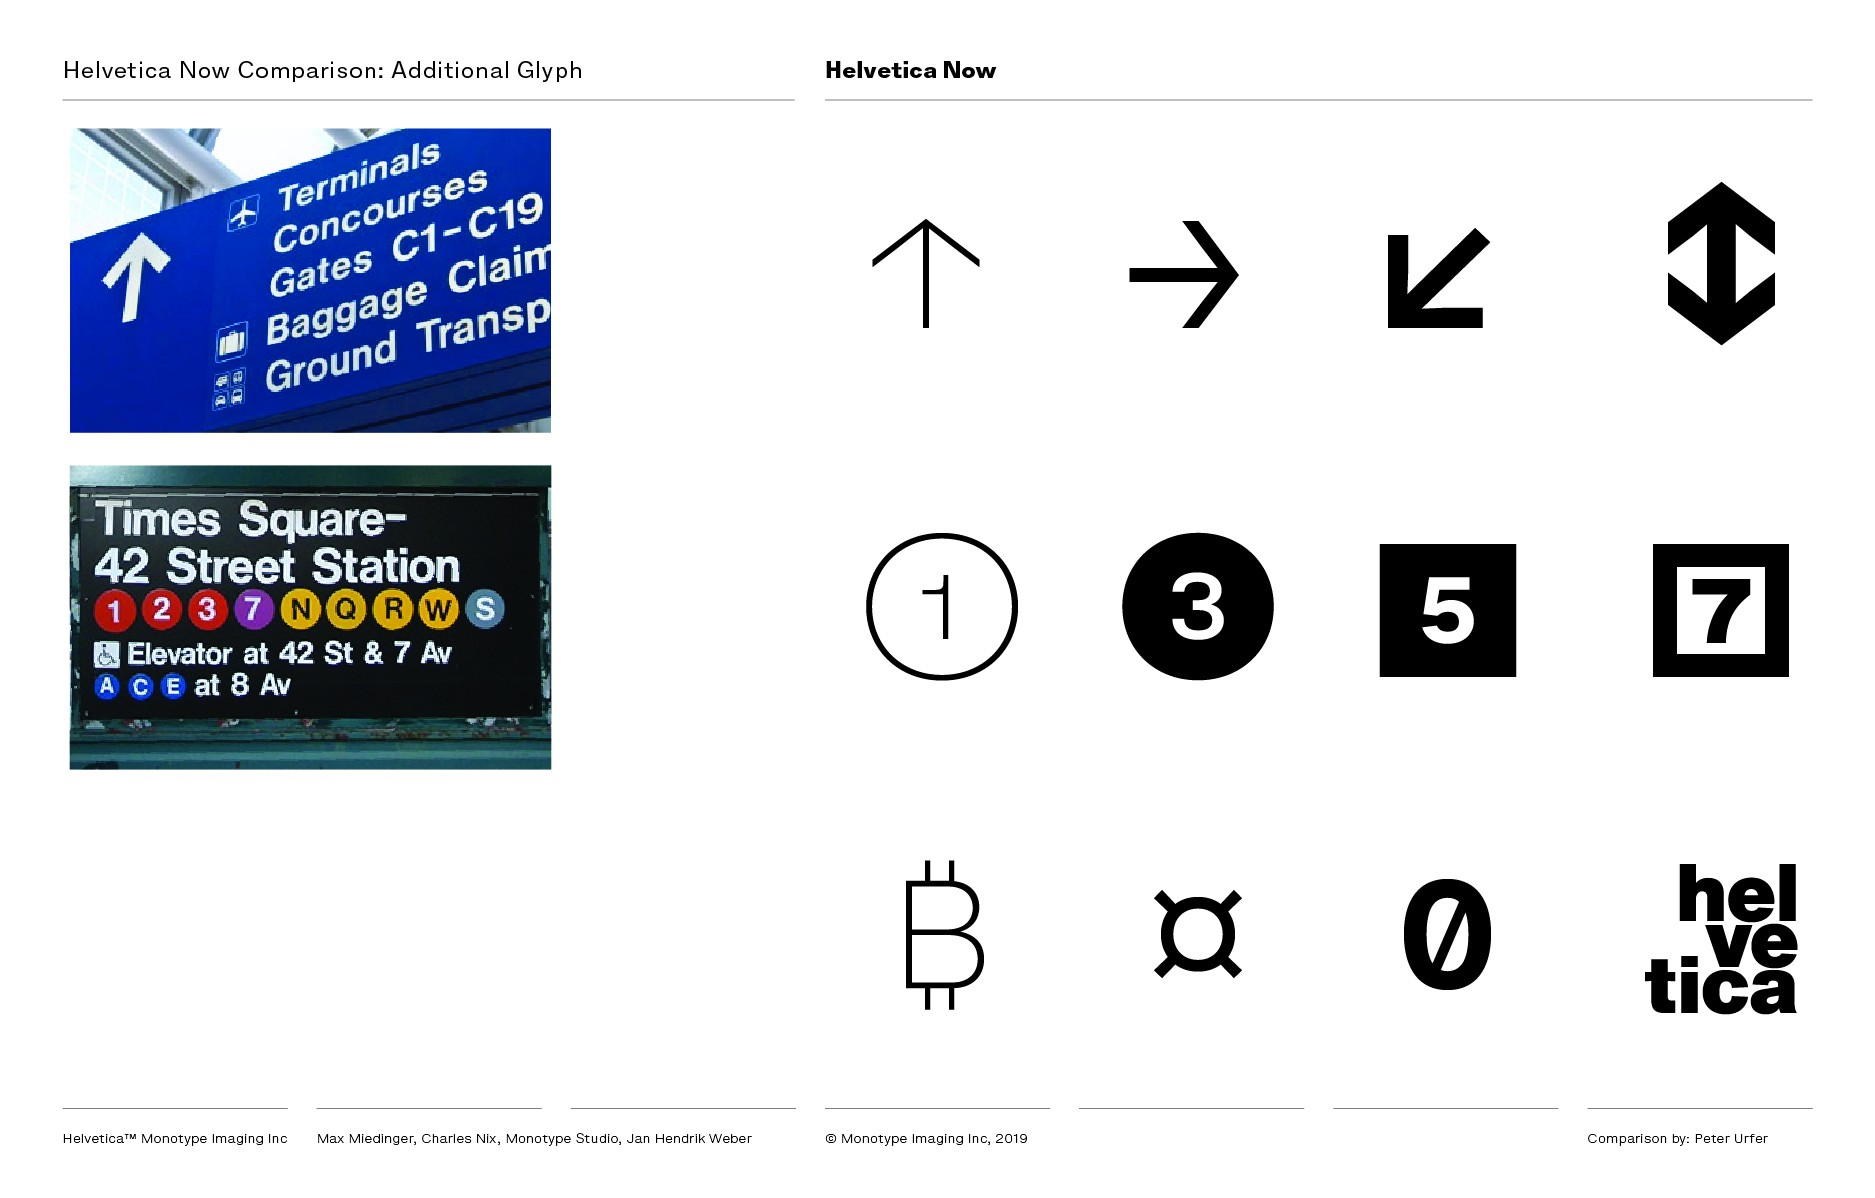 Bringing a Classic into the Digital Age with Helvetica Now